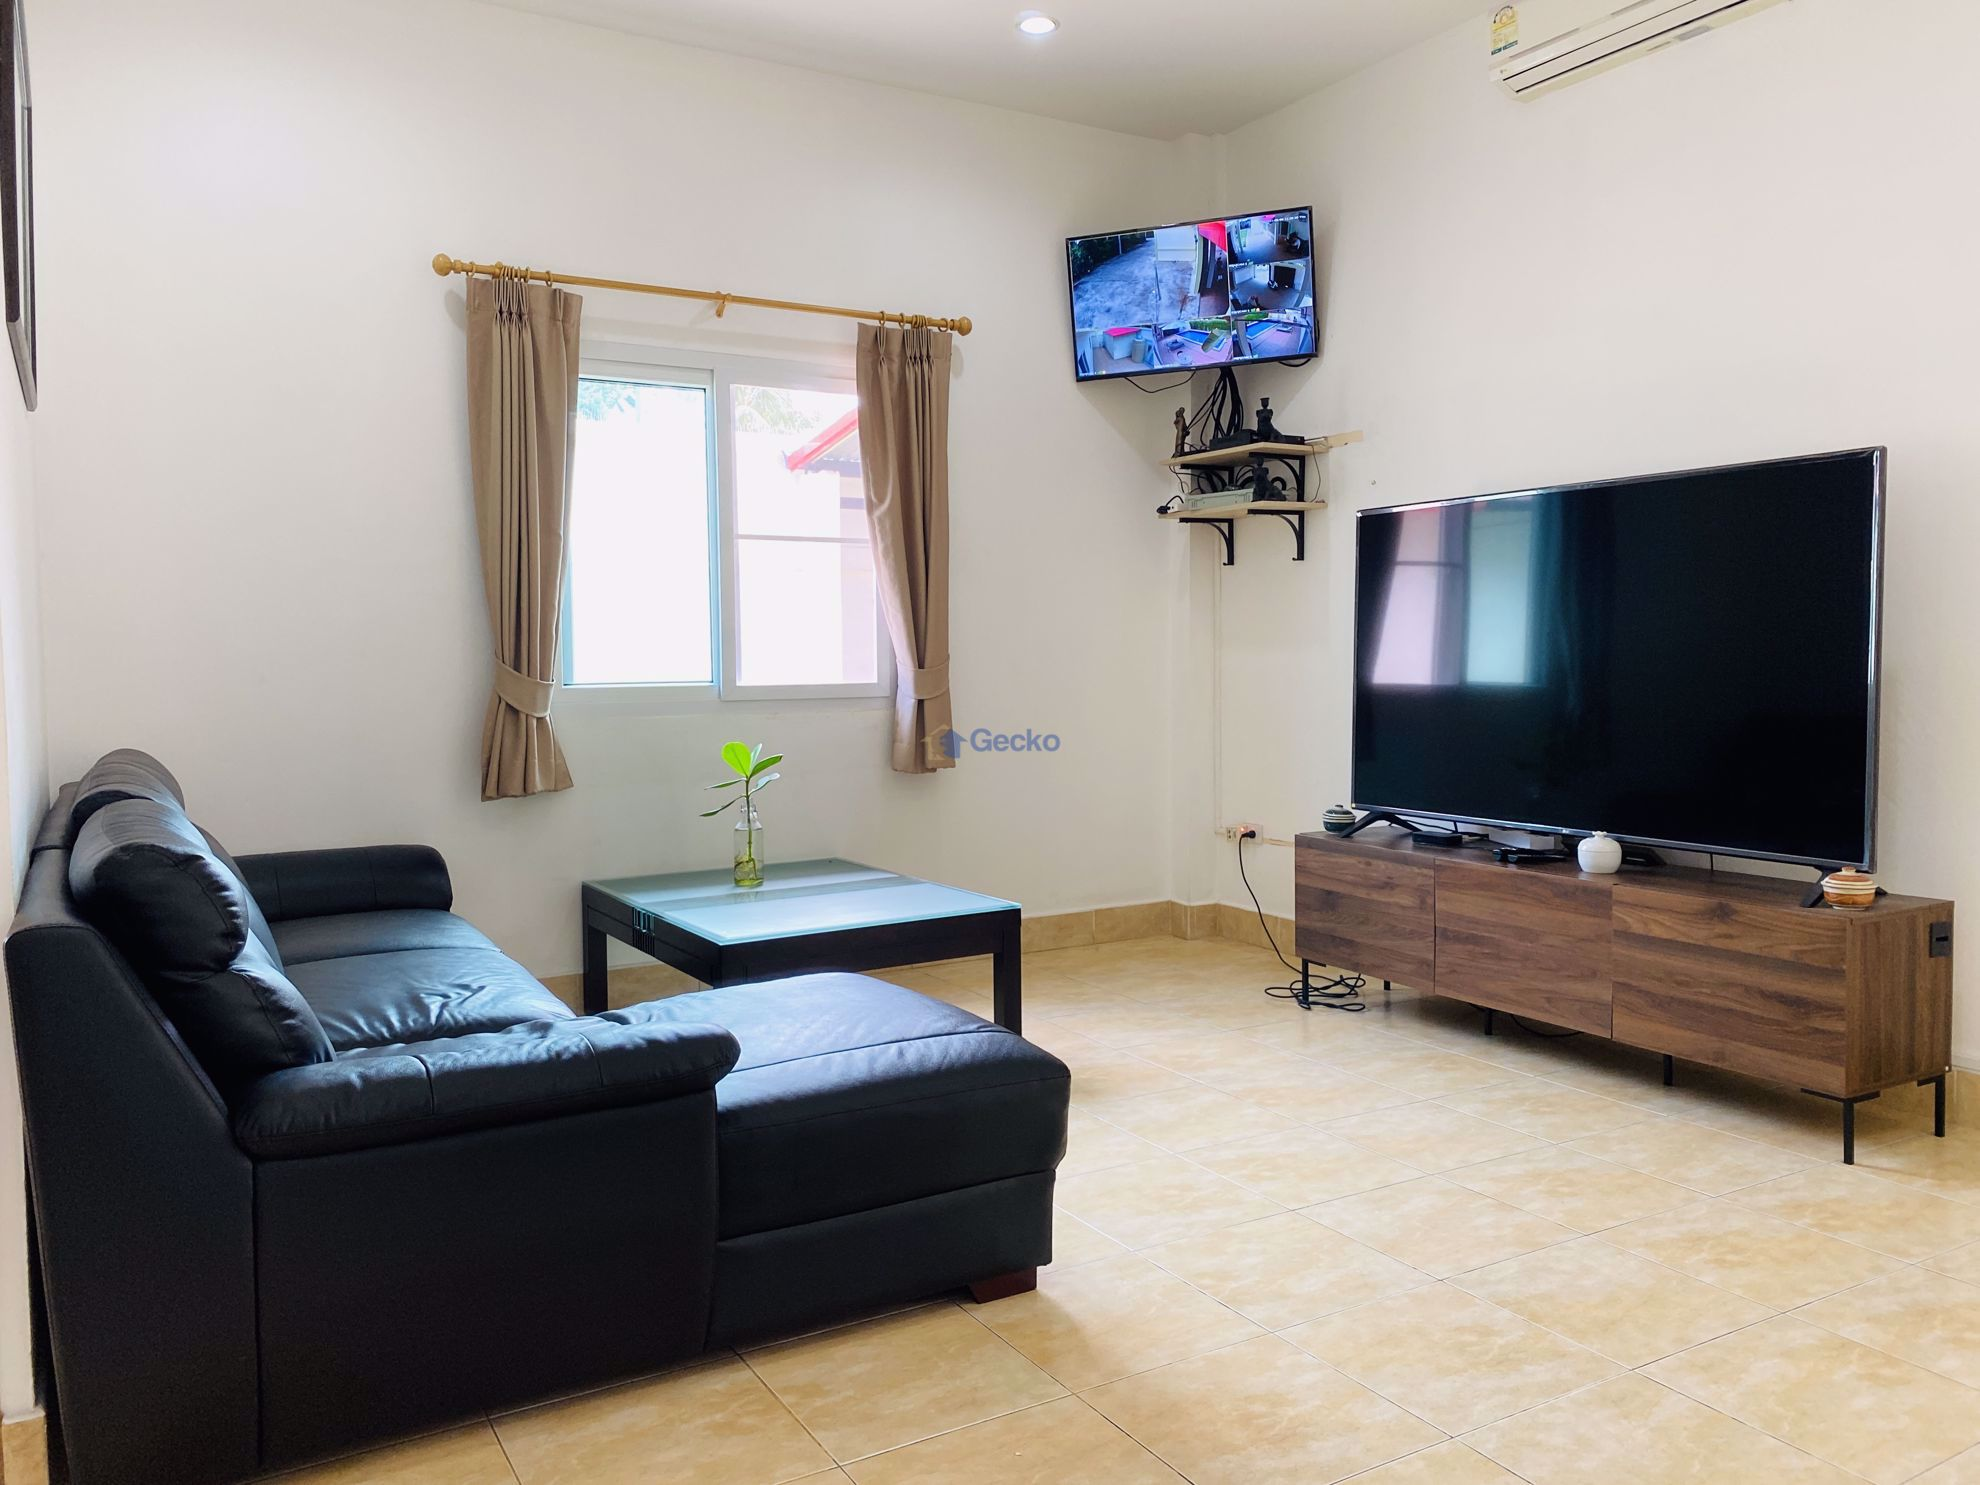 Picture of 3 Bedrooms bed in House in Powers Court Estate in East Pattaya H009224